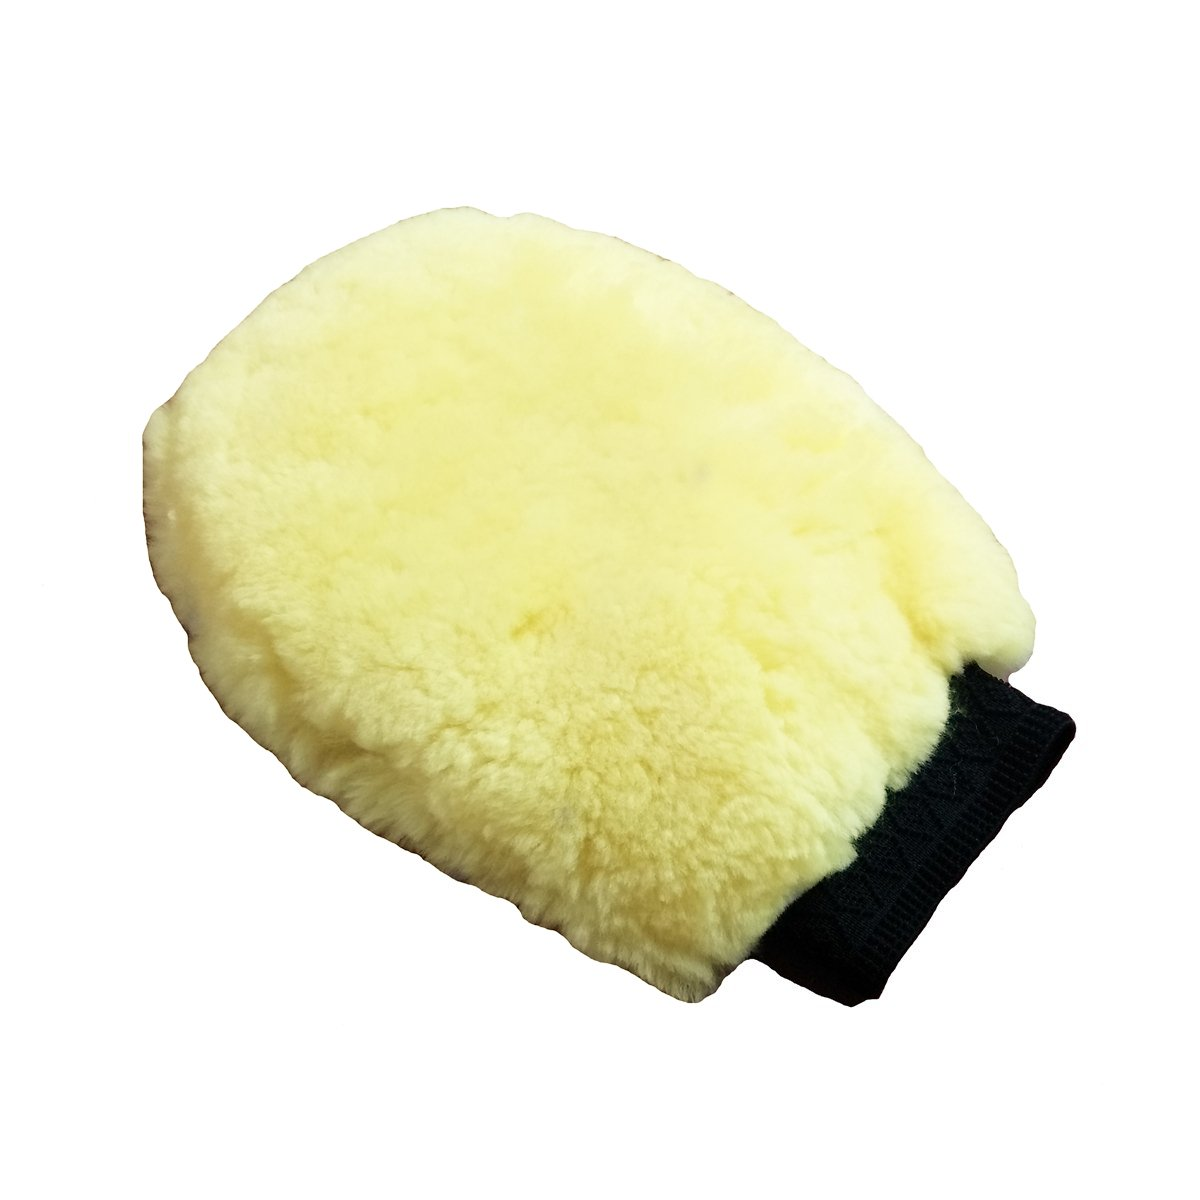 Okayda 100% Real Lambs Wool Car Wash Mitt, Natural Sheepskin Mitt, High Density, Soft, No Scratches, Retain No Dirty, Suit for Car, Glass, Home, Office Cleaning Beige